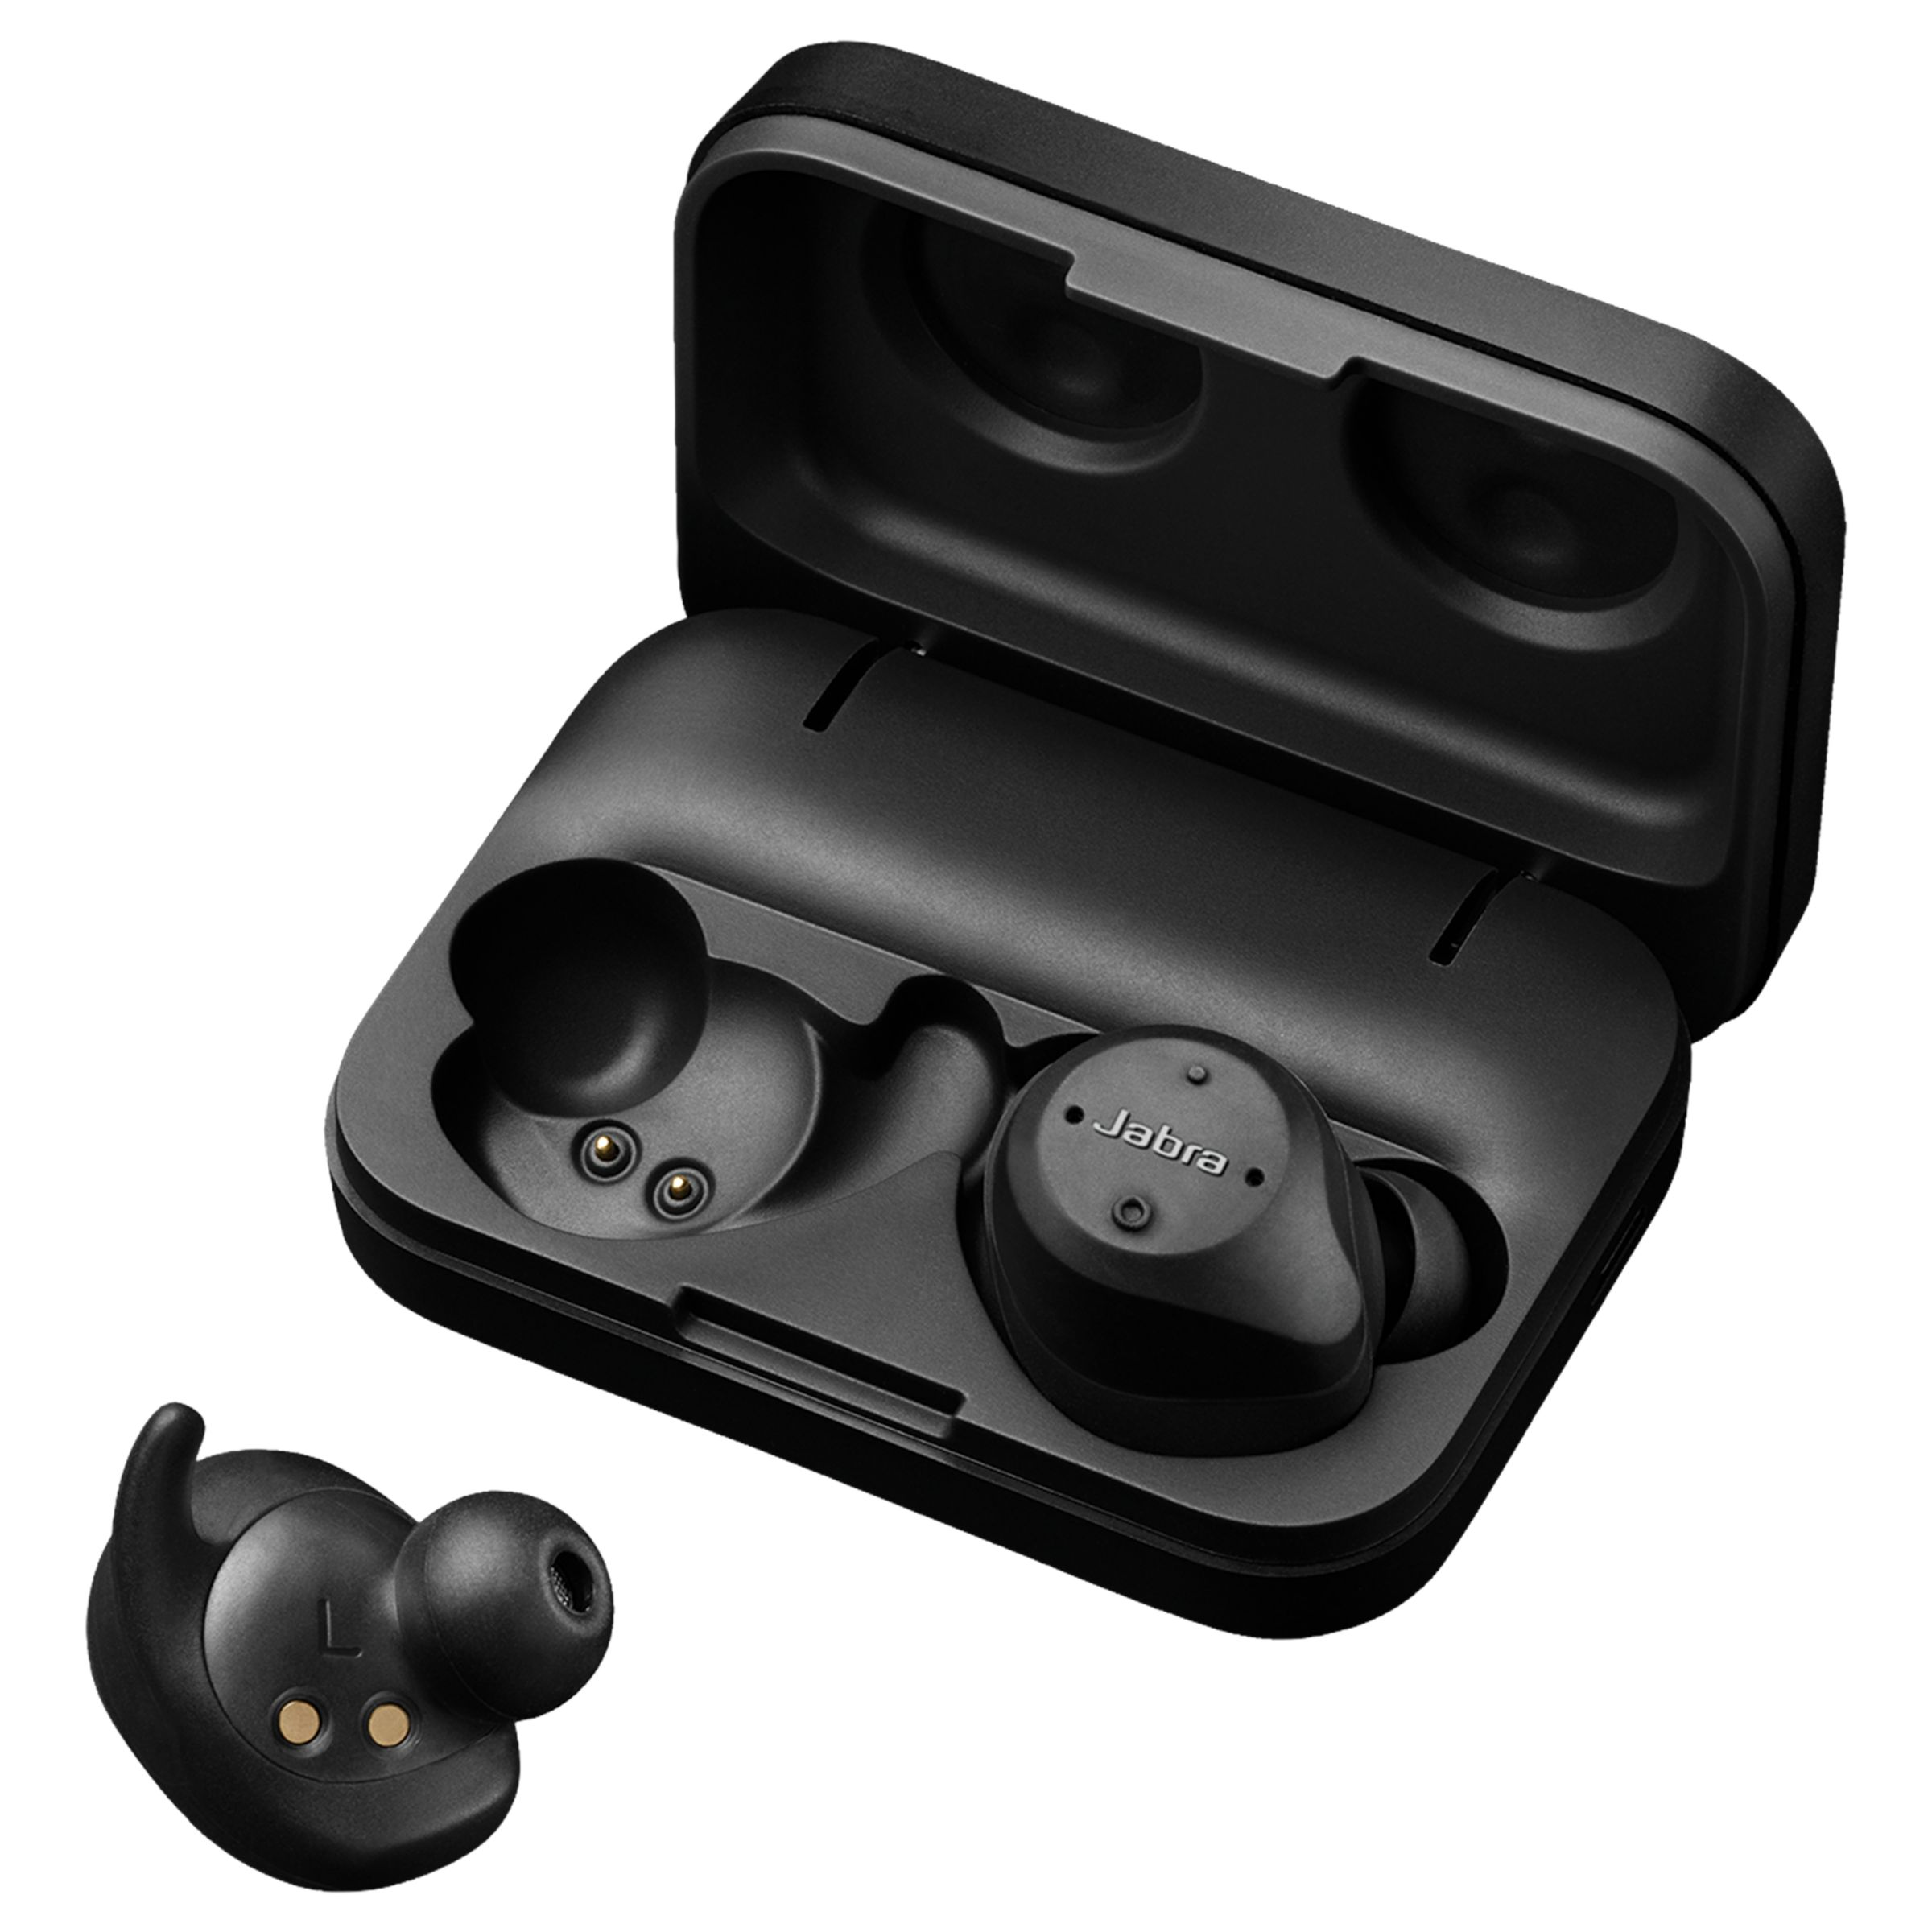 Jabra Jabra Elite Sport True Wireless Waterproof Bluetooth In-Ear Headphones with Mic/Remote